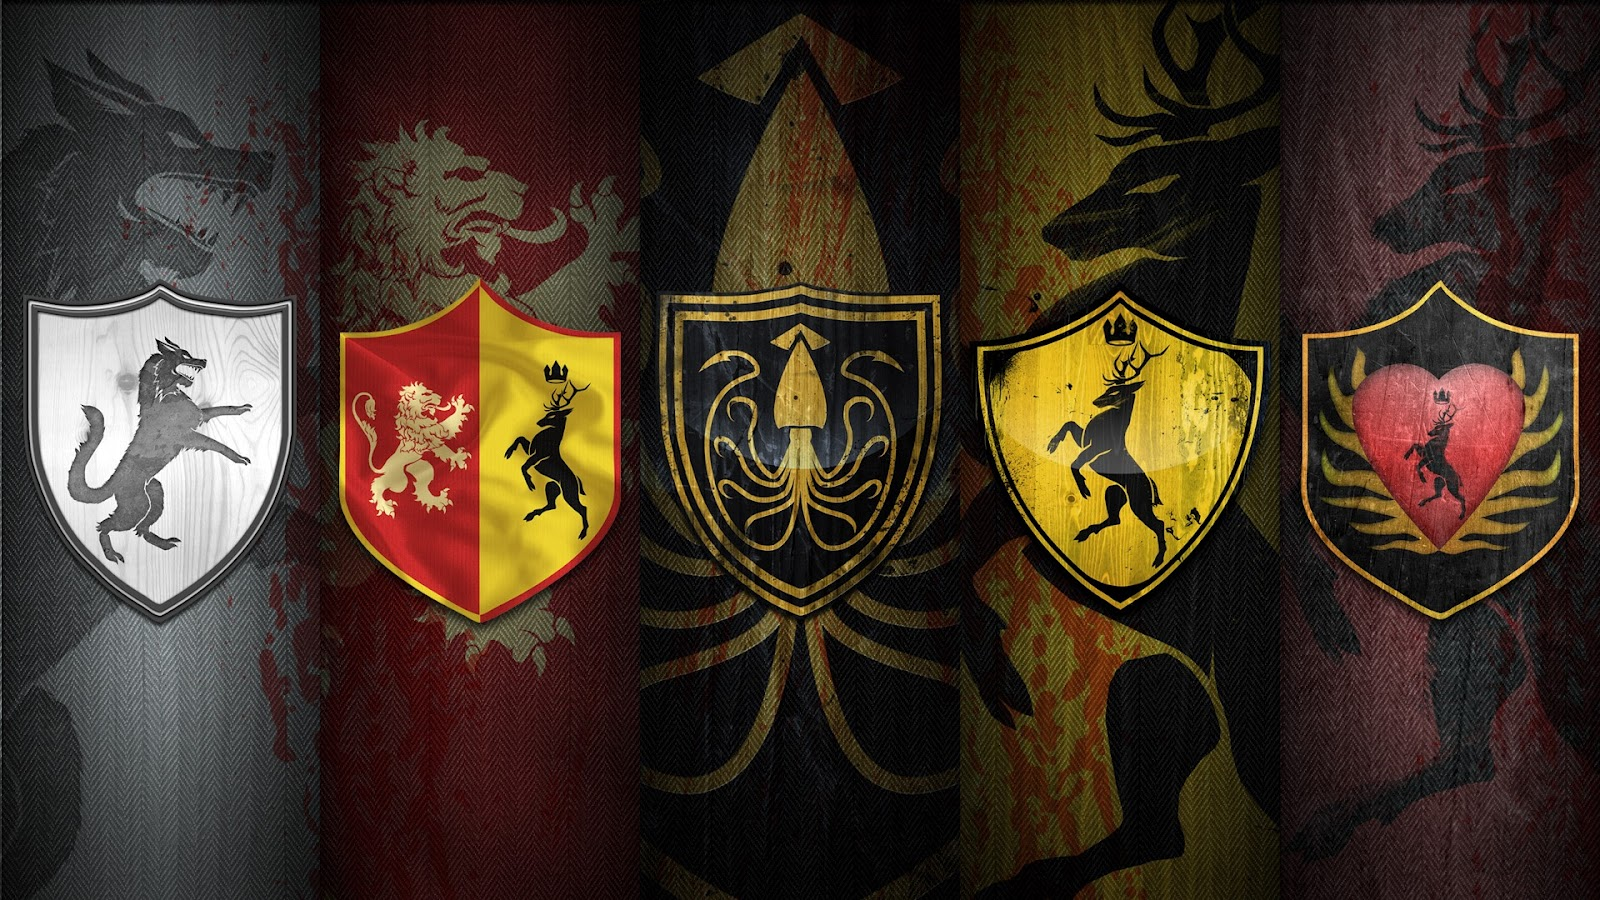 http://3.bp.blogspot.com/-deLGMsxsxz0/UBMrmWhlTiI/AAAAAAAADU4/Mw5oaAUb-9M/s1600/game-of-thrones-wallpaper.jpg